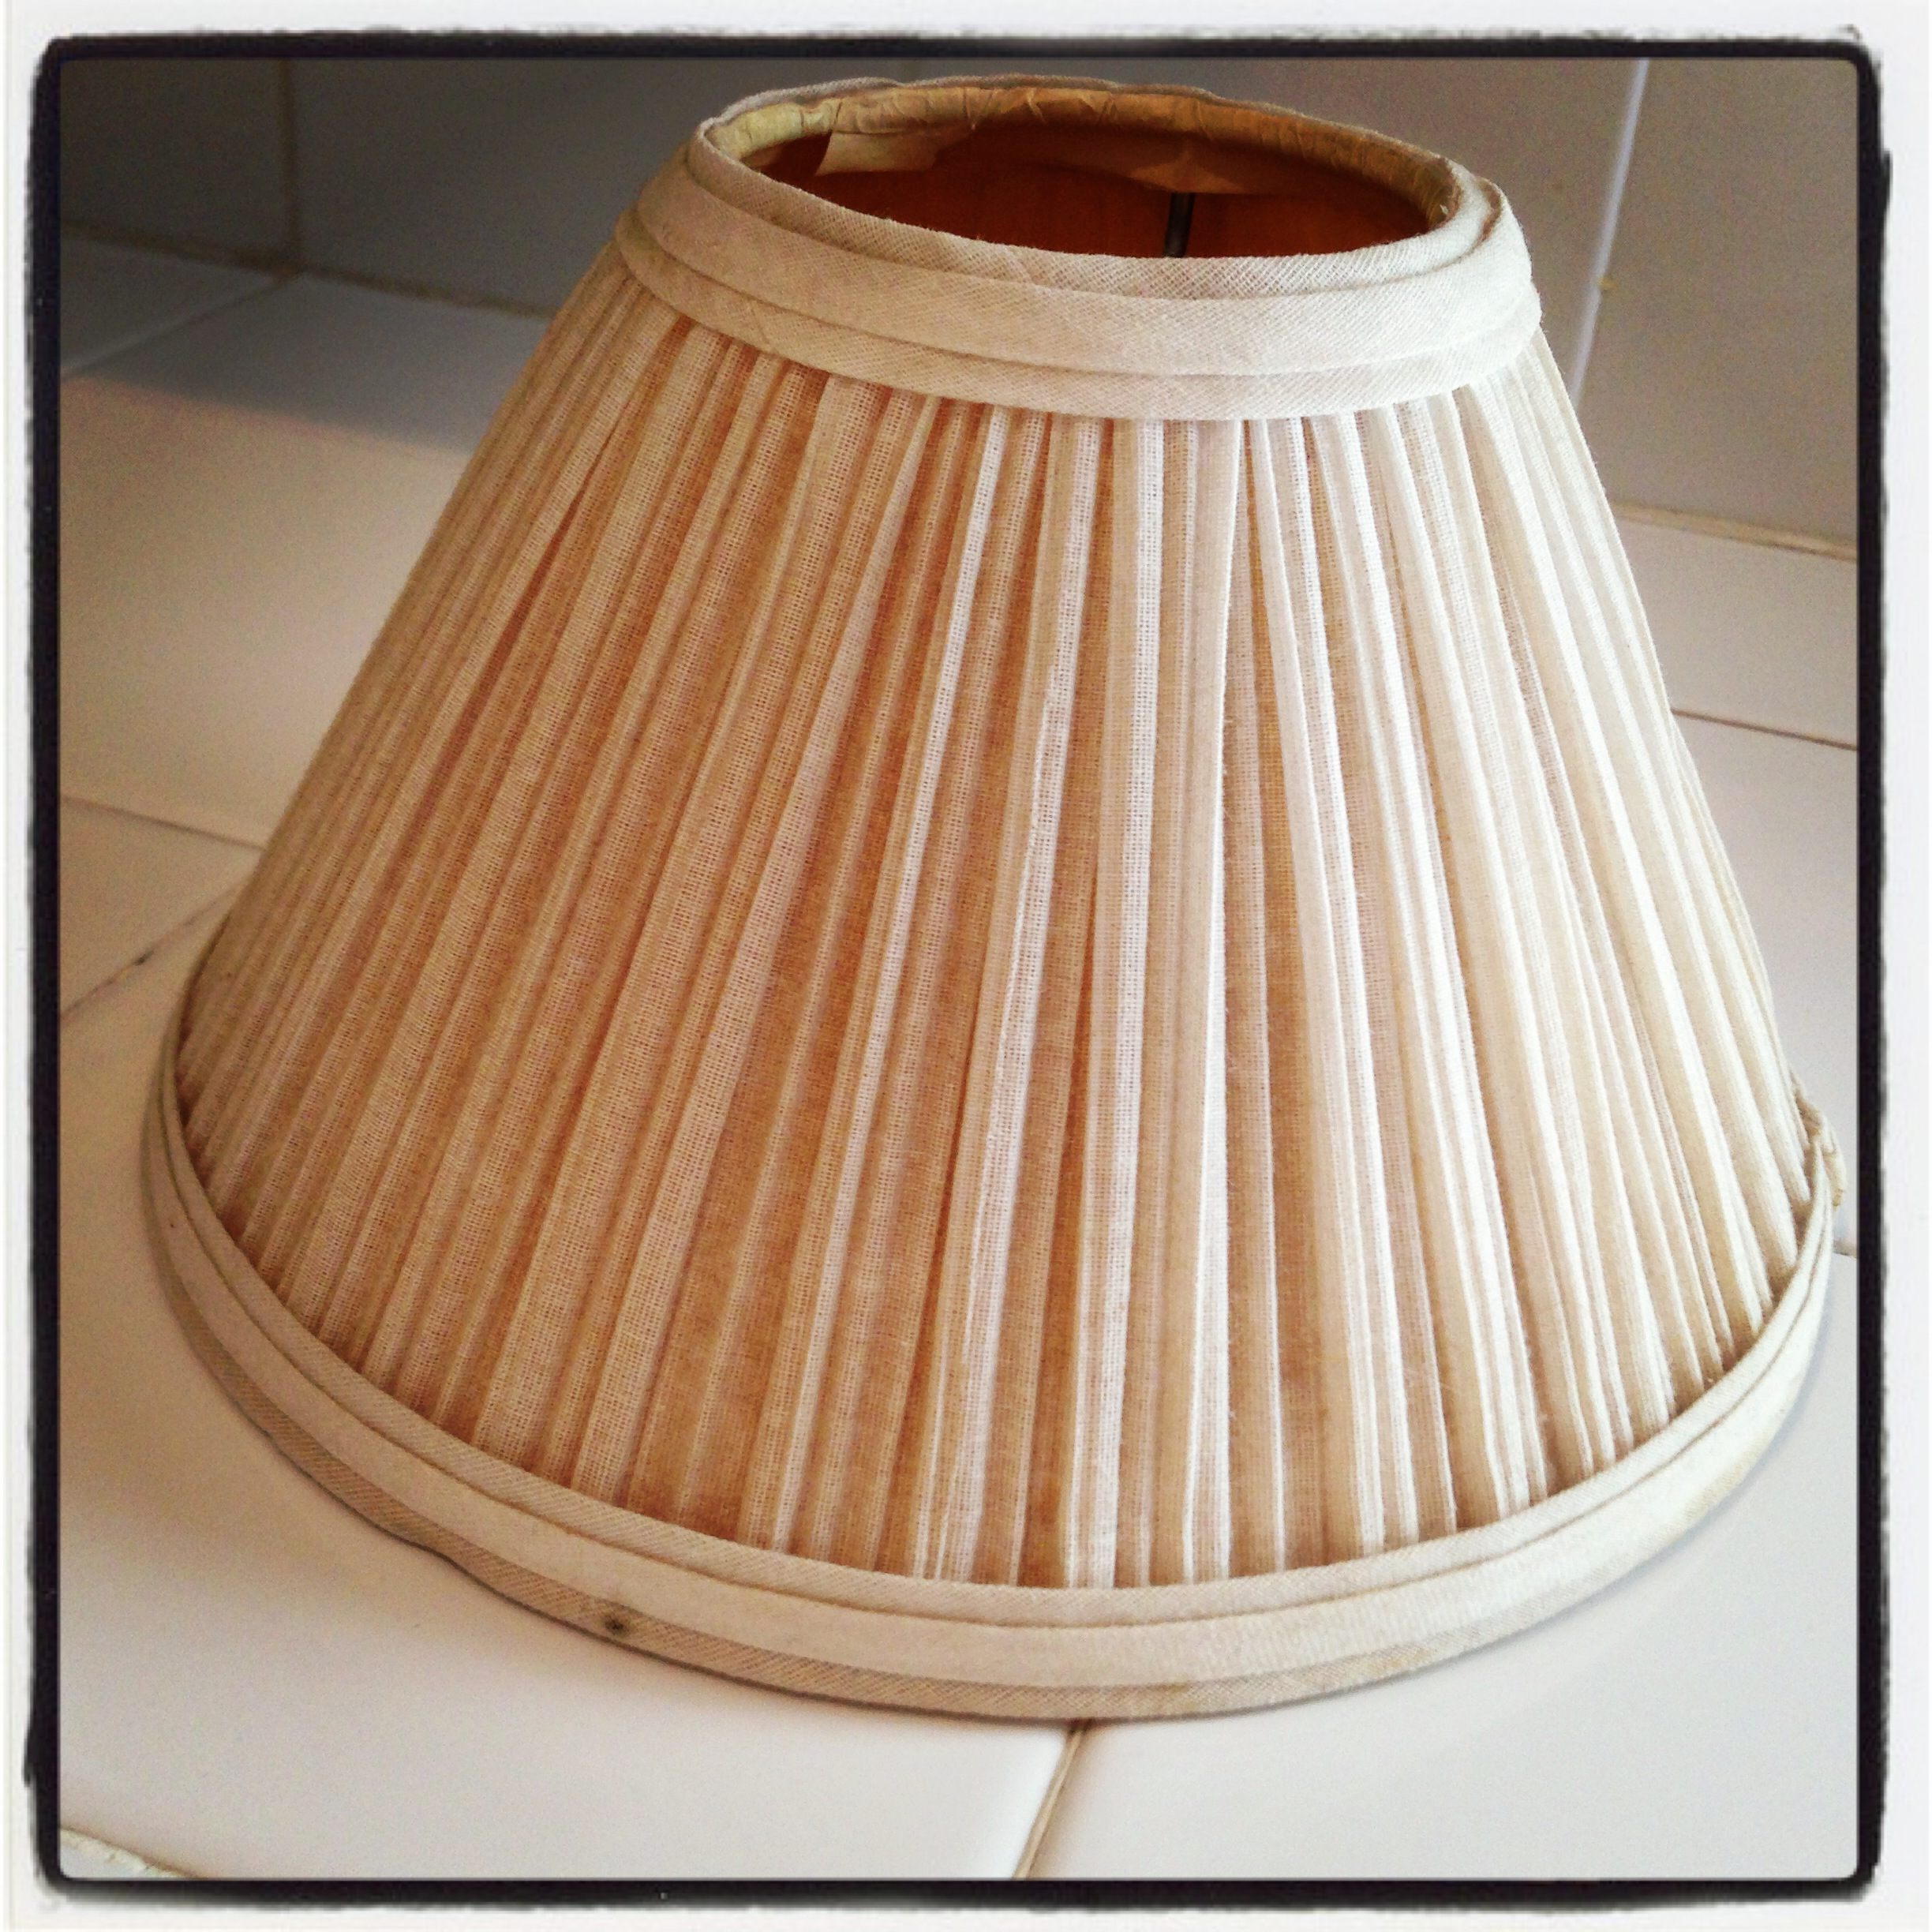 Rv remodel a lampshade redo adventures in a hallway for Redoing lamp shades